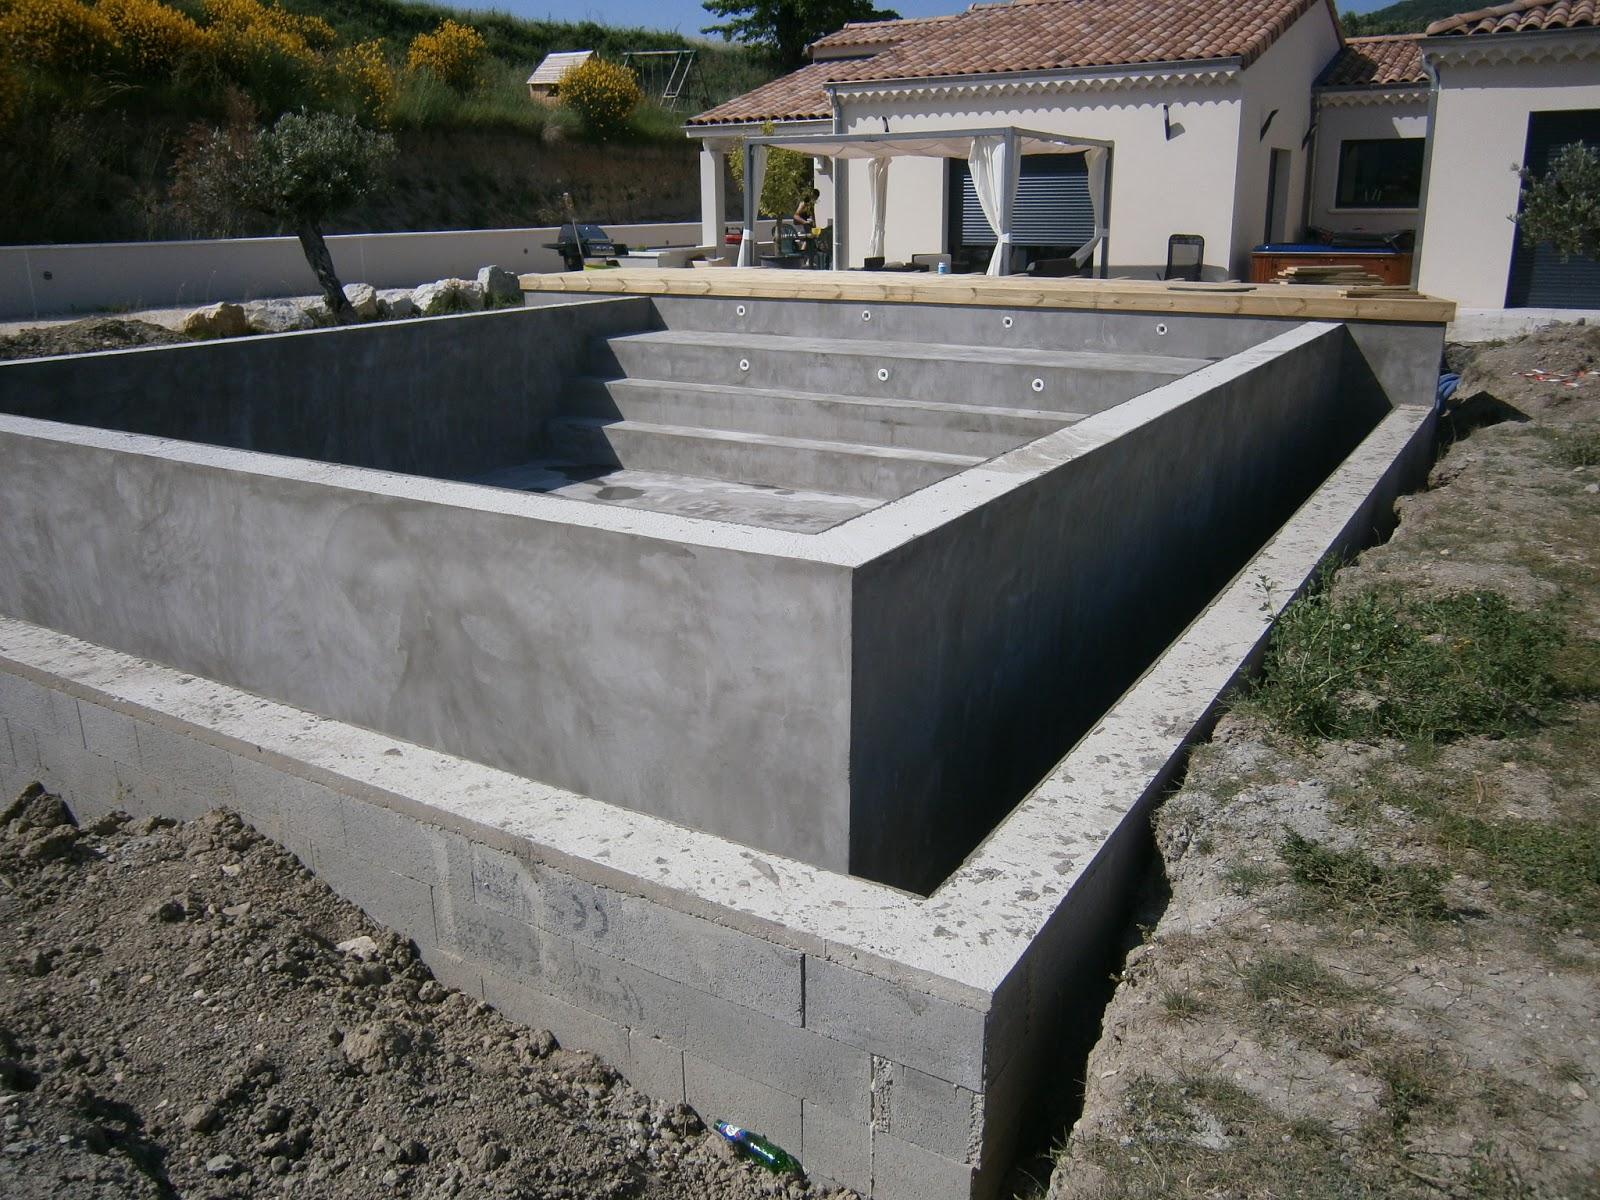 Maison direct r alisation d 39 une piscine d bordement for Realisation piscine